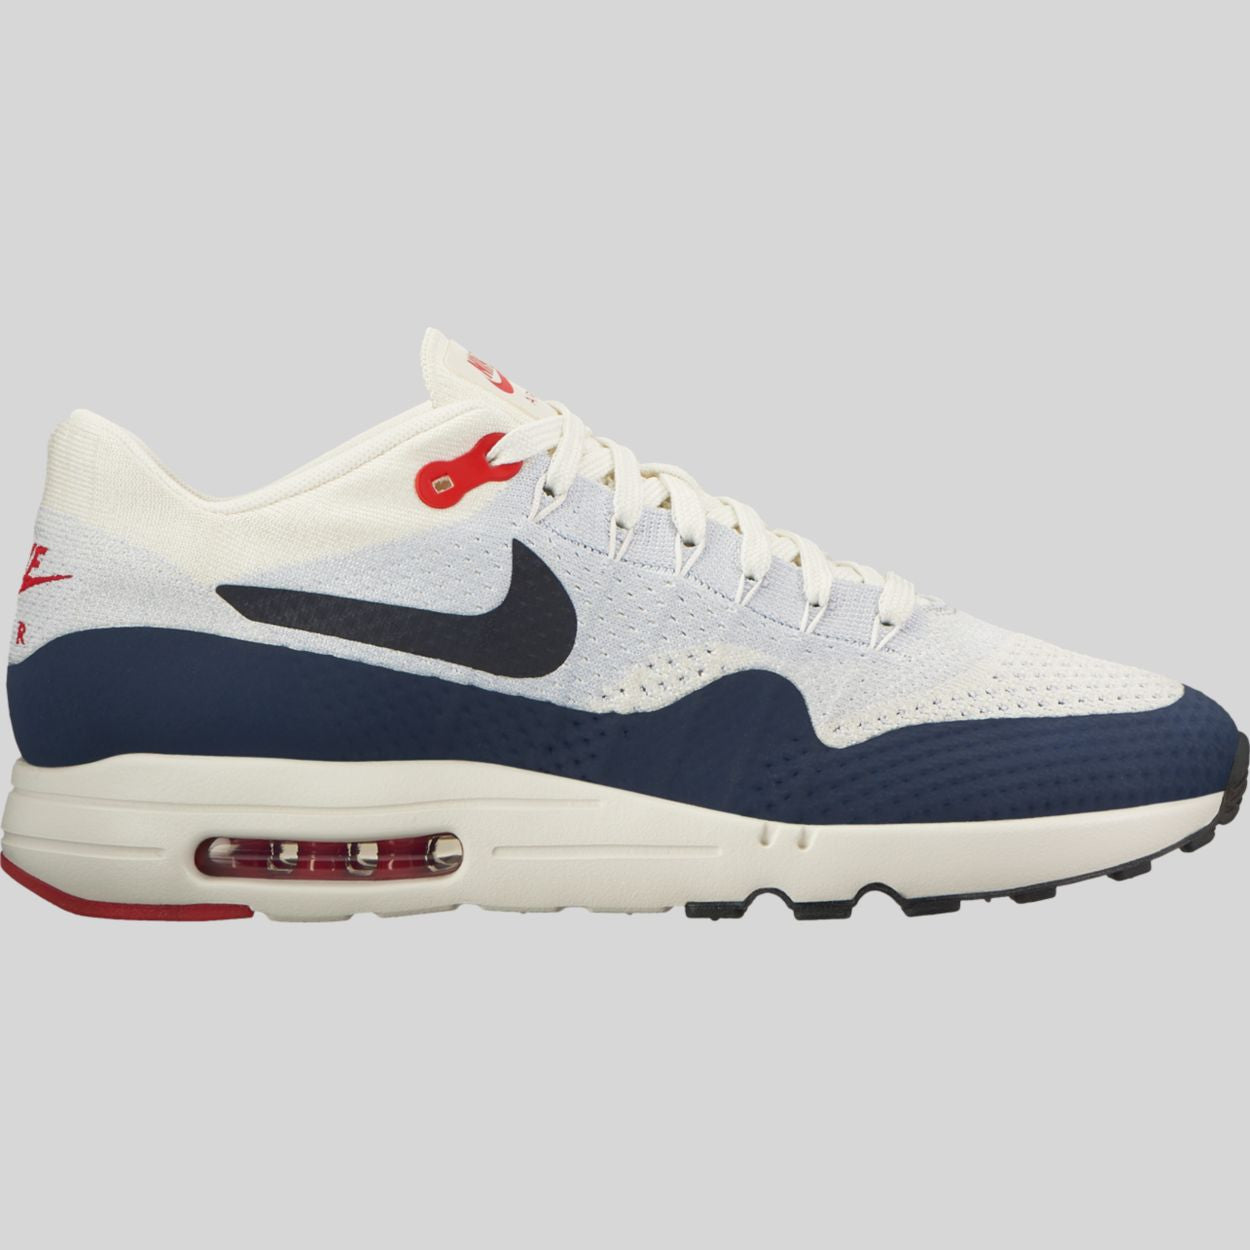 aa6288191b859 Nike Air Max 1 Ultra 2.0 Flyknit Sail Obsidian Wolf Grey University Red  (875942-